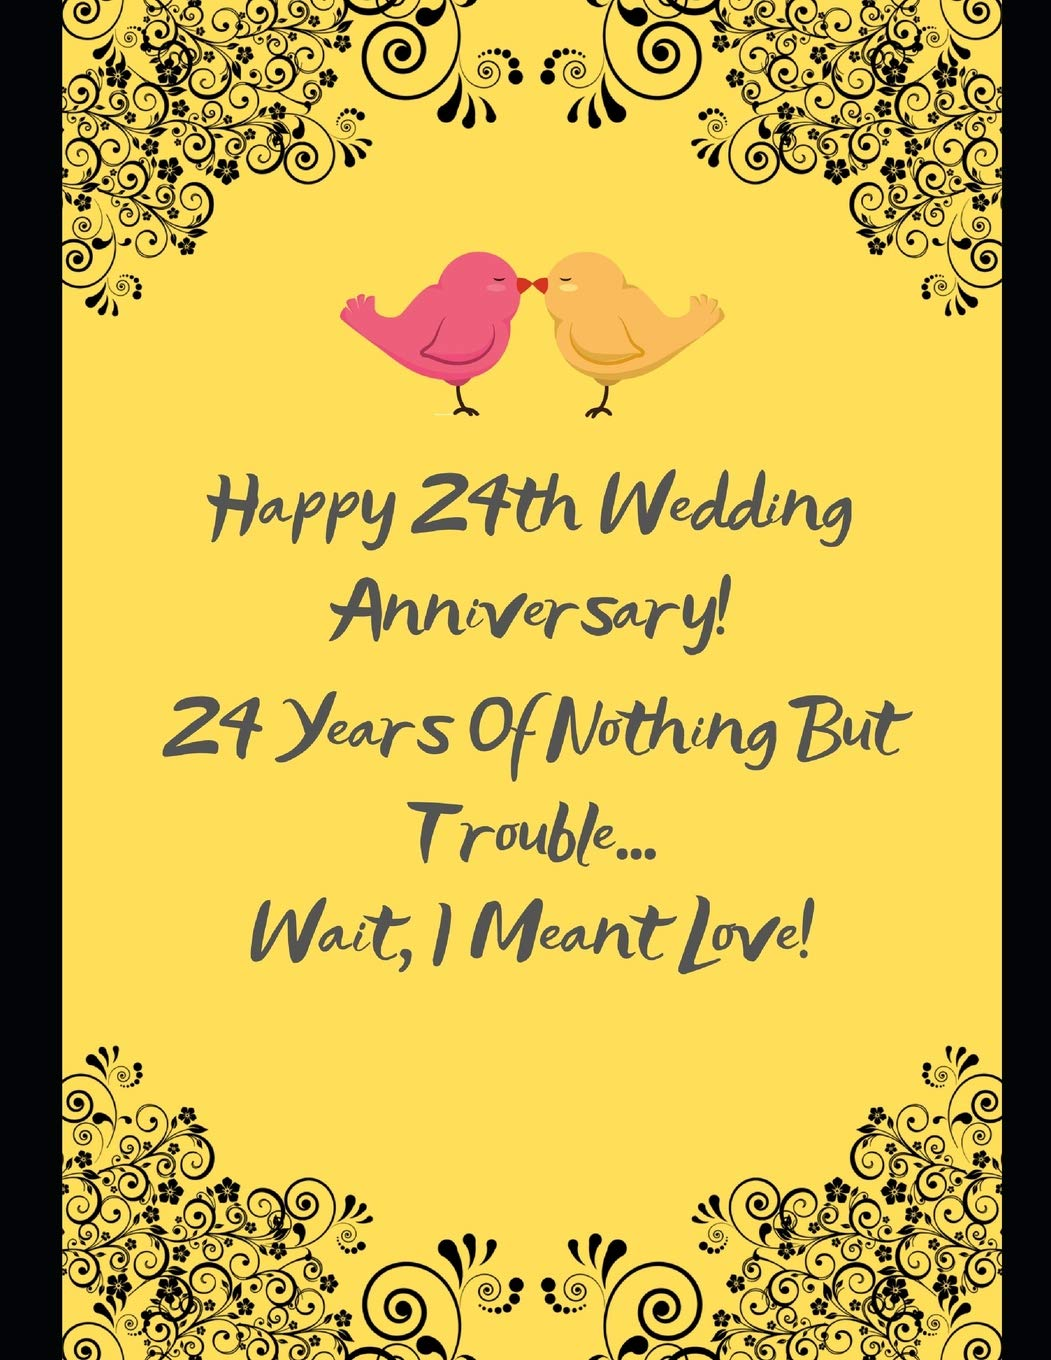 Happy 24th Wedding Anniversary 24 Years Of Nothing But Trouble Wait I Meant Love Note Book Journal Specialcontribution Specialevents 9781098833718 Amazon Com Books